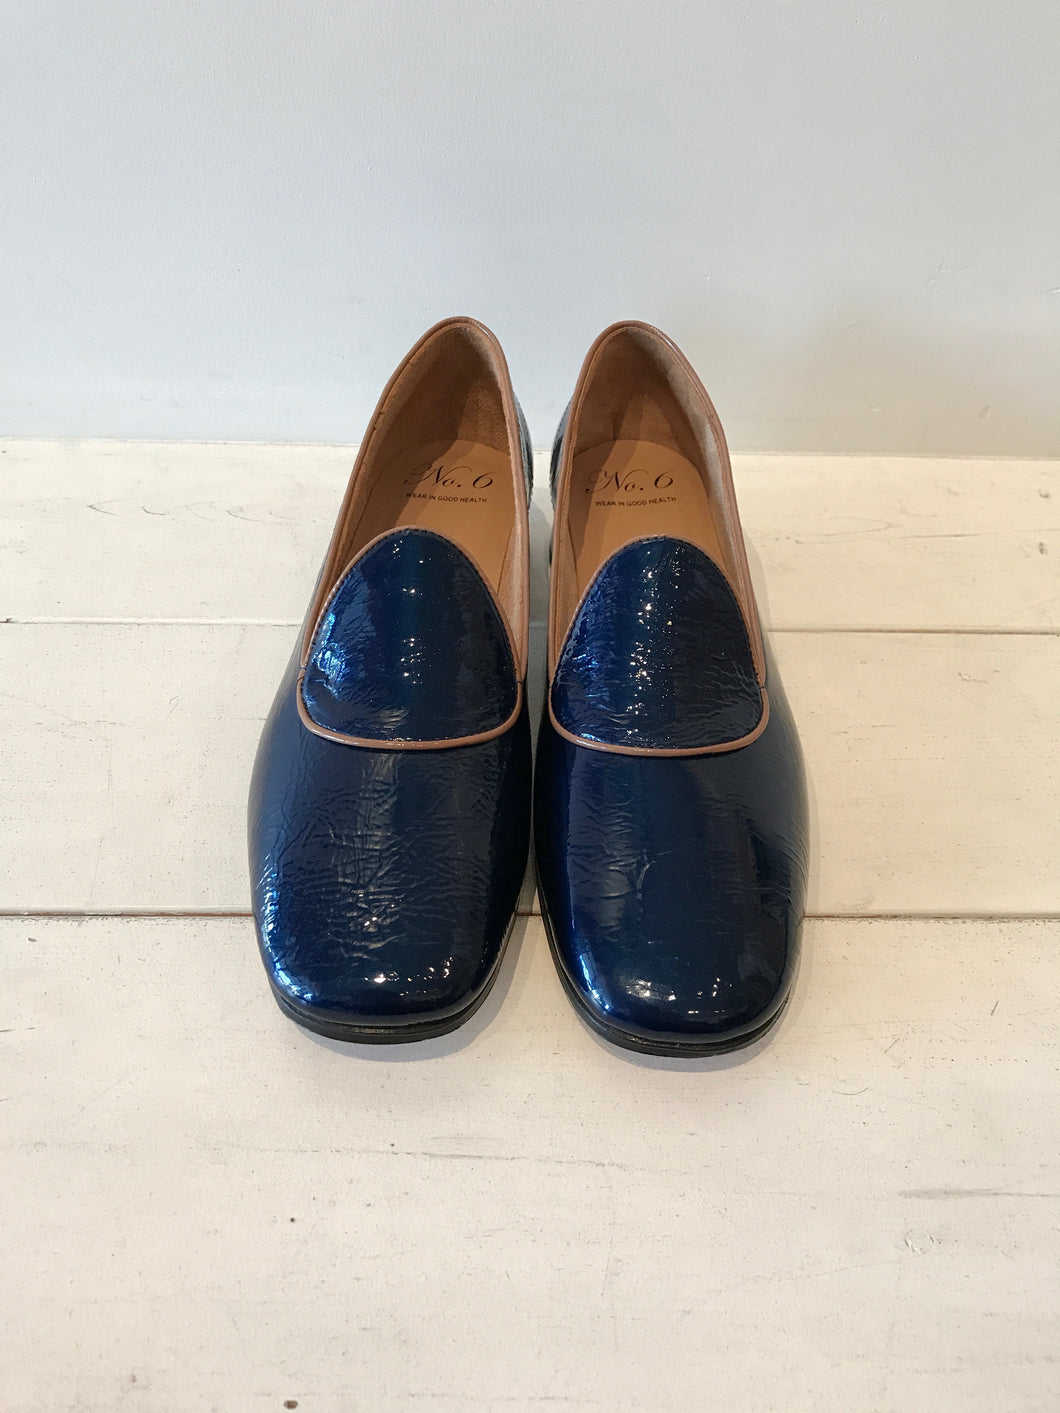 No.6 Remy Slipper in Navy Crinkle